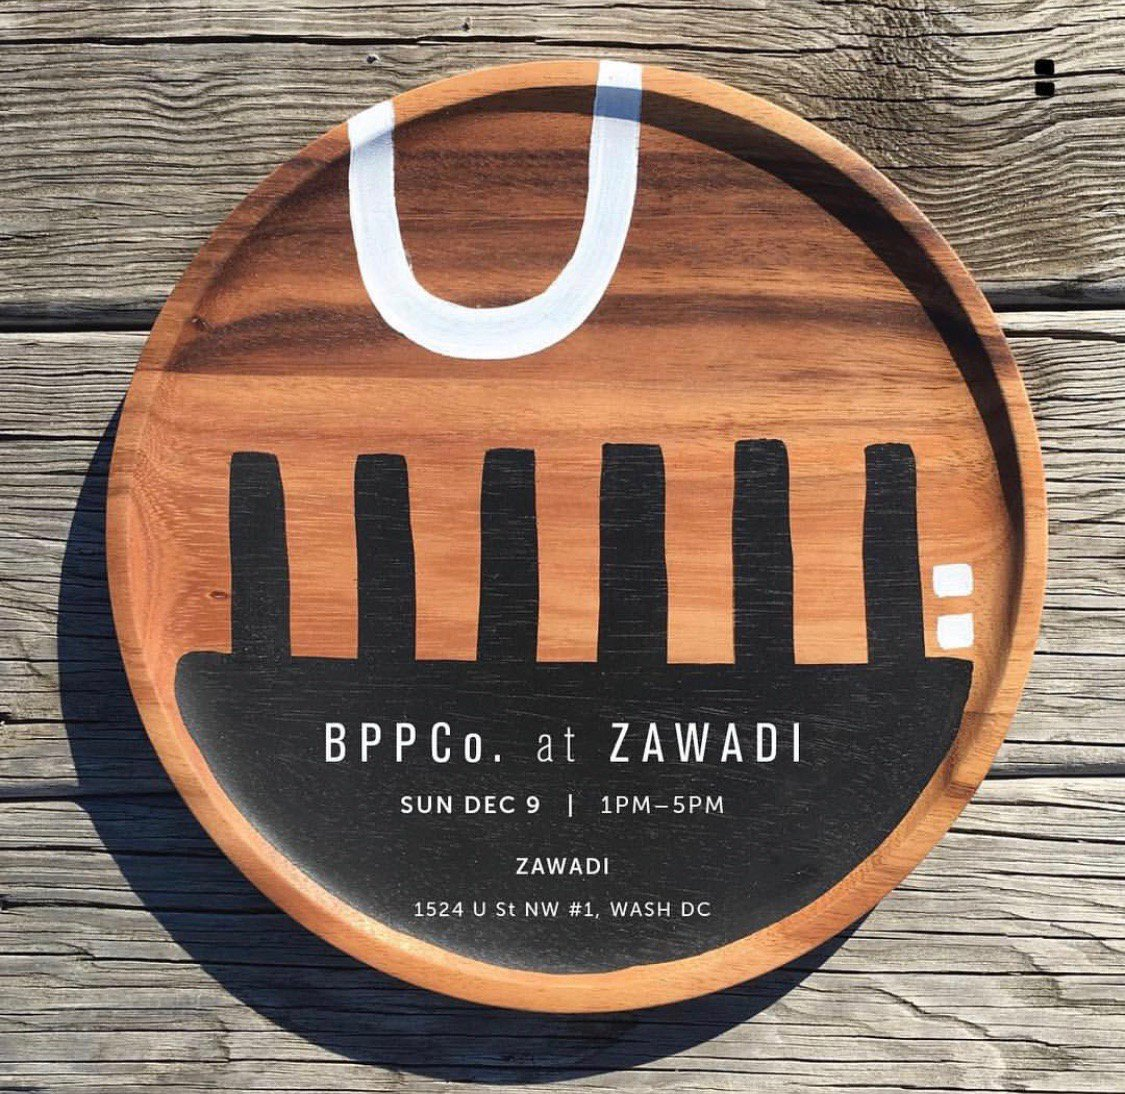 We are excited to host & support Hadiya Willams from Black Pepper Paperie Co December 9th from 12-5PM.  #ShopZawadi for your holiday gifts & purchase handmade clay ware, Jewelry & print works this weekend!